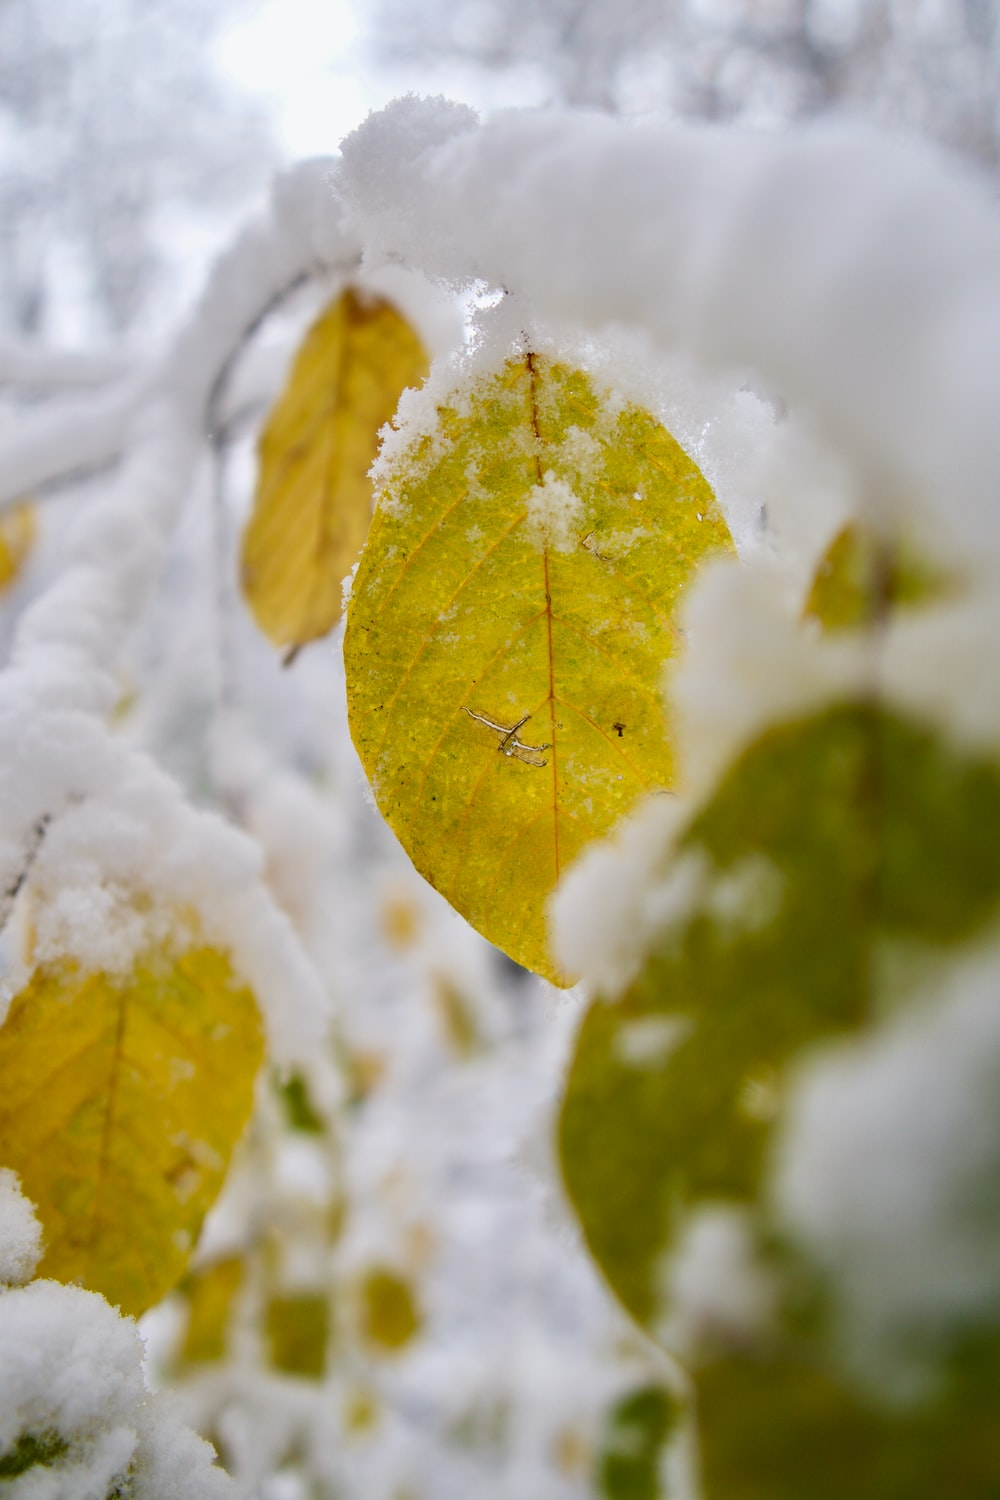 yellow leaf on snow covered ground